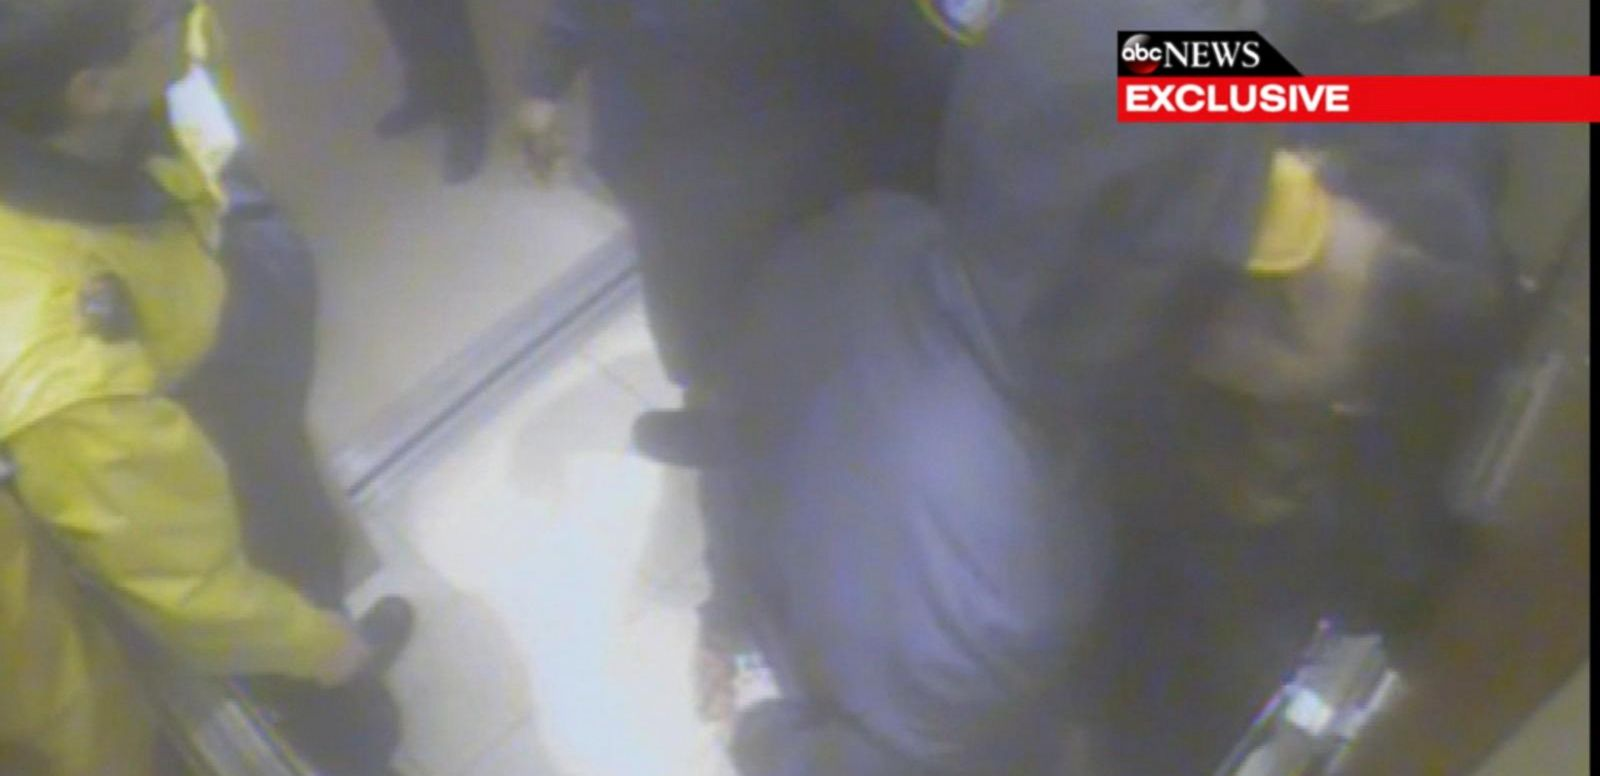 VIDEO: Ray Rice, Girlfriend Kiss After Elevator Punch in New Video